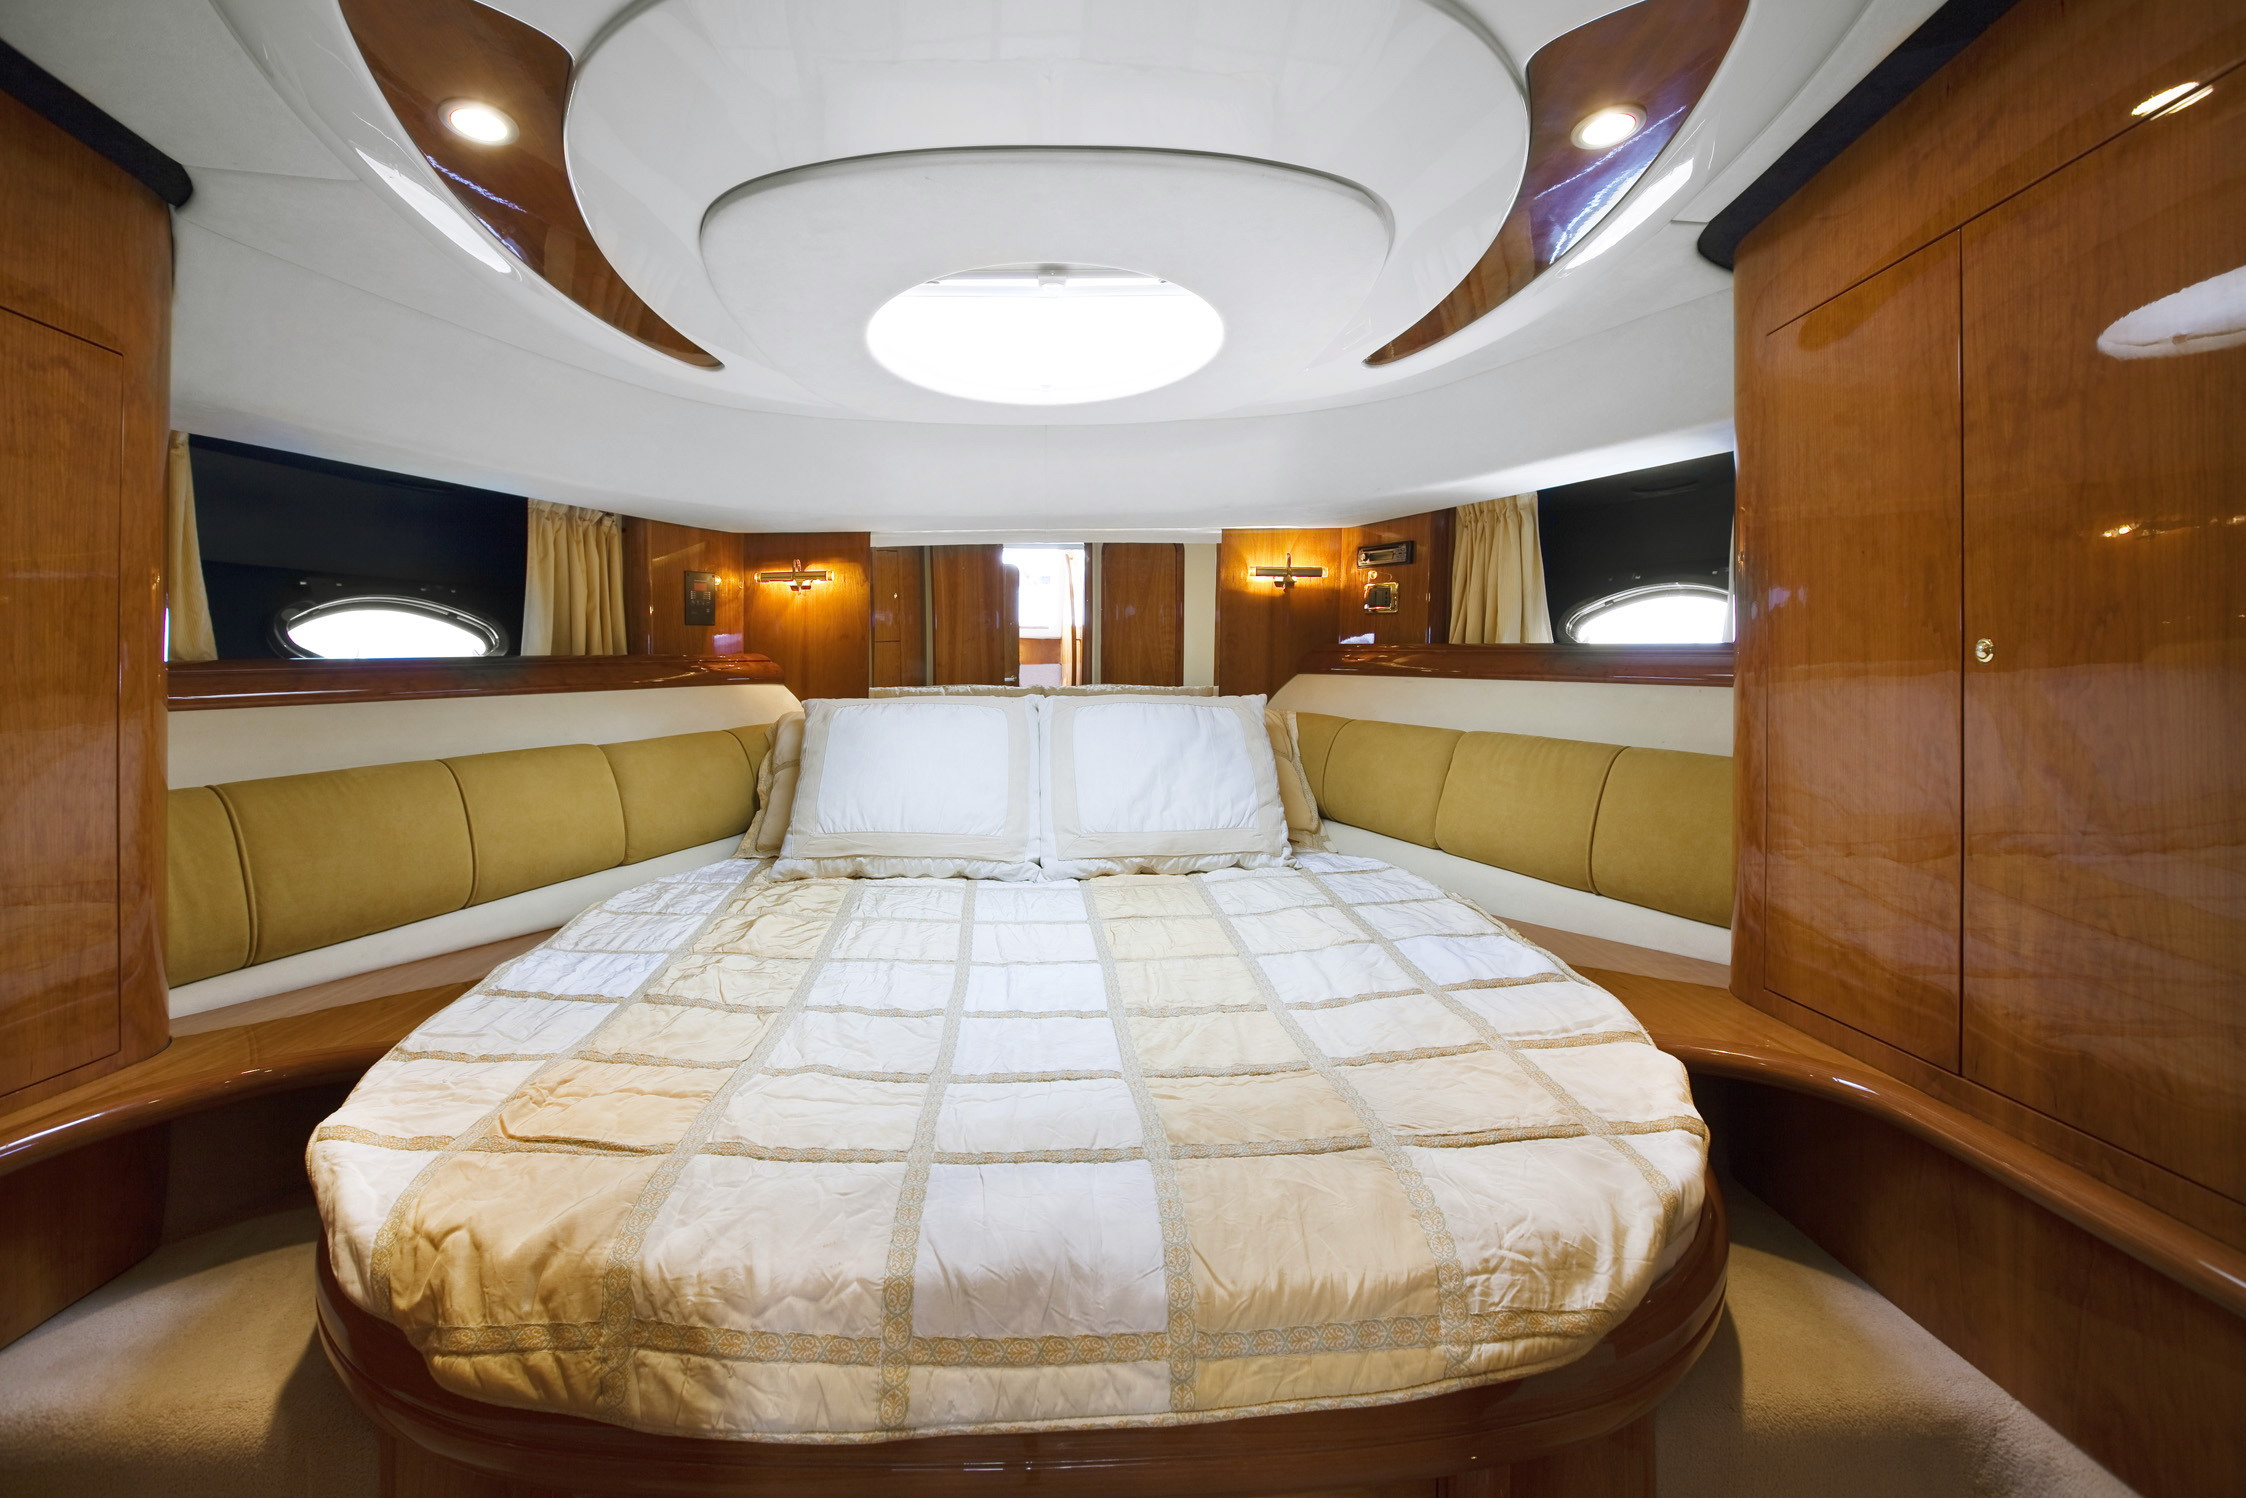 INCOGNITO,MOTOR YACHTS, Yachts for Rent, Yacht Charter, Yacht Rental